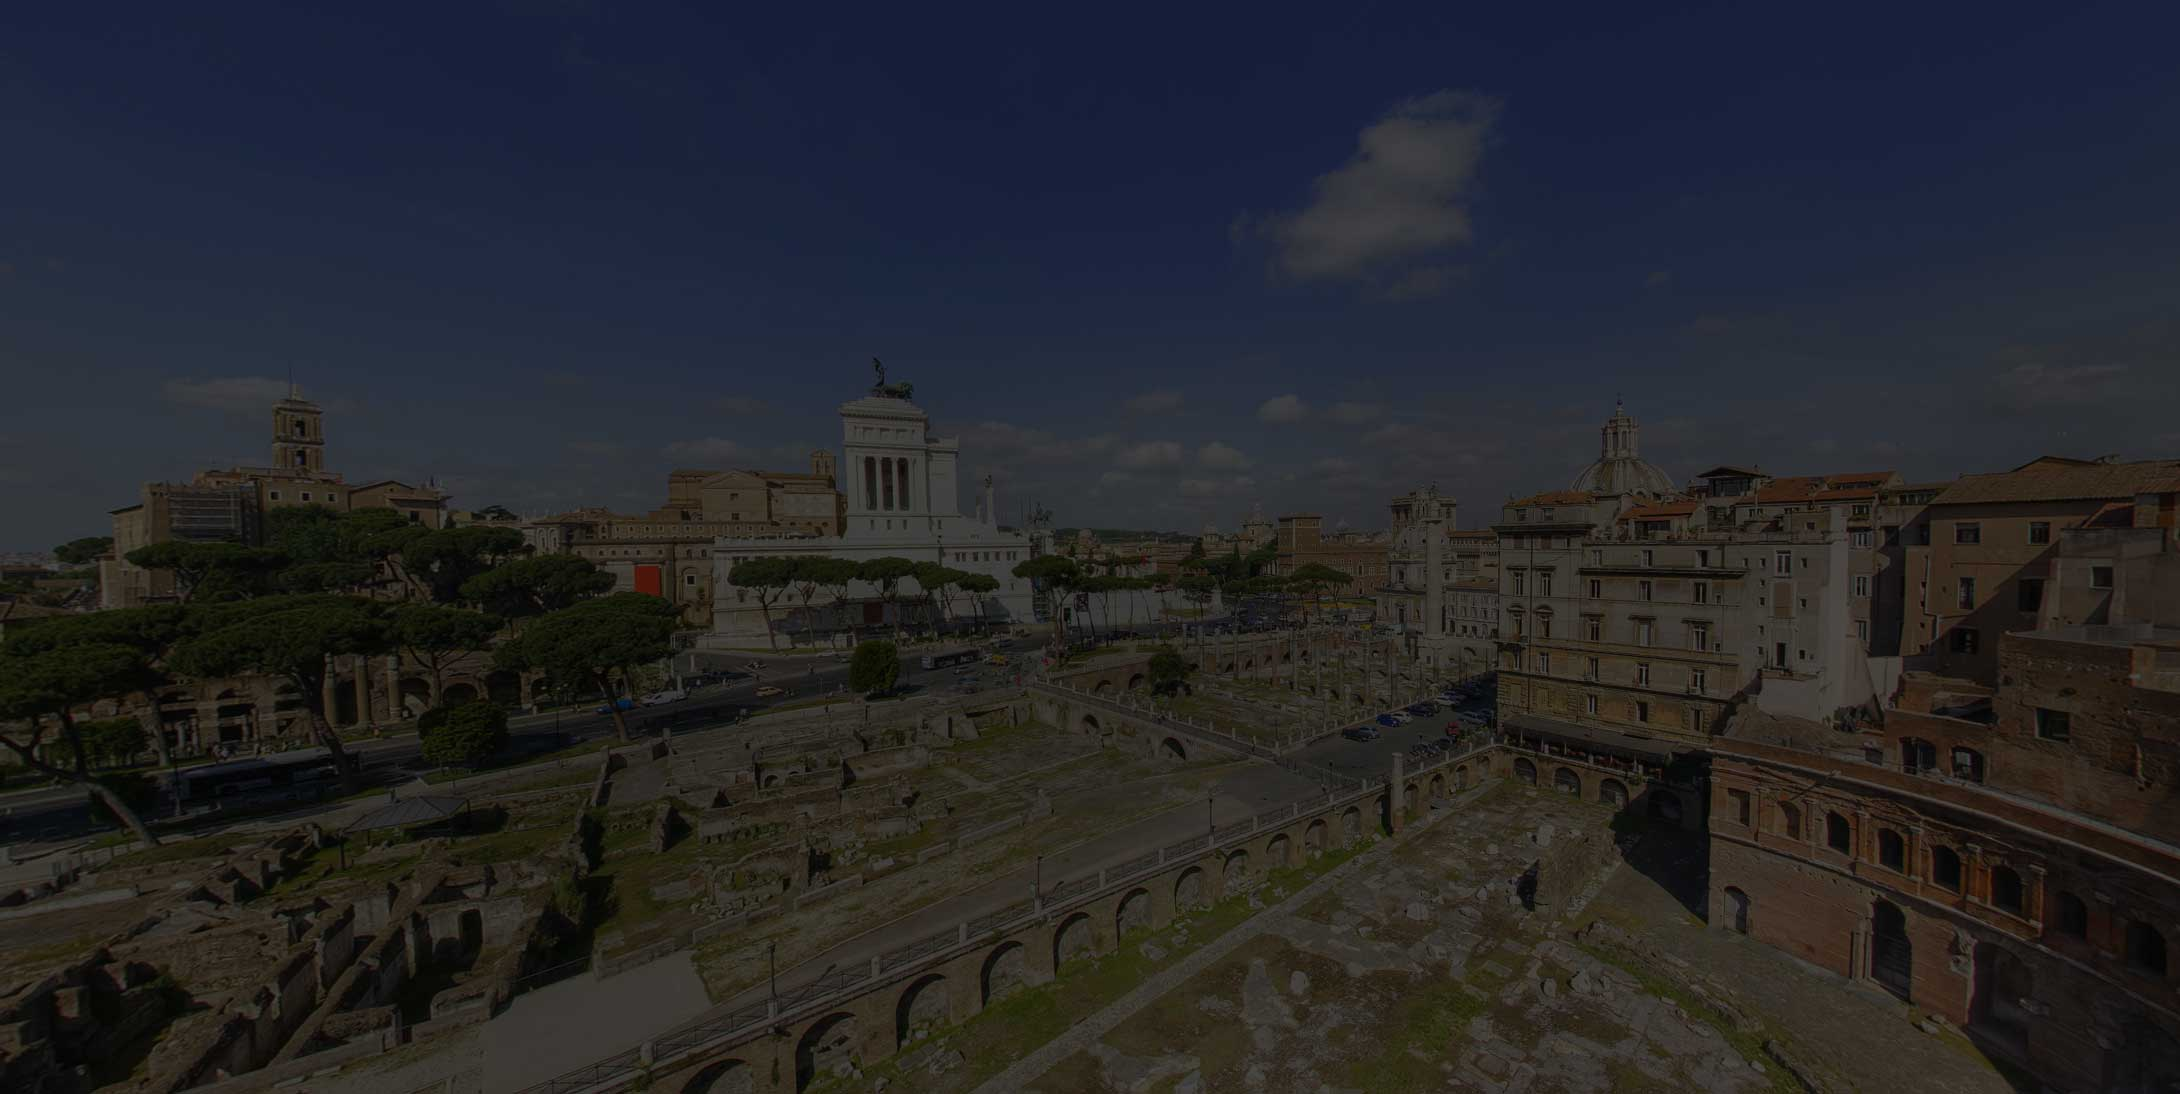 Virtual Tour Mercati di Traiano - Immersive